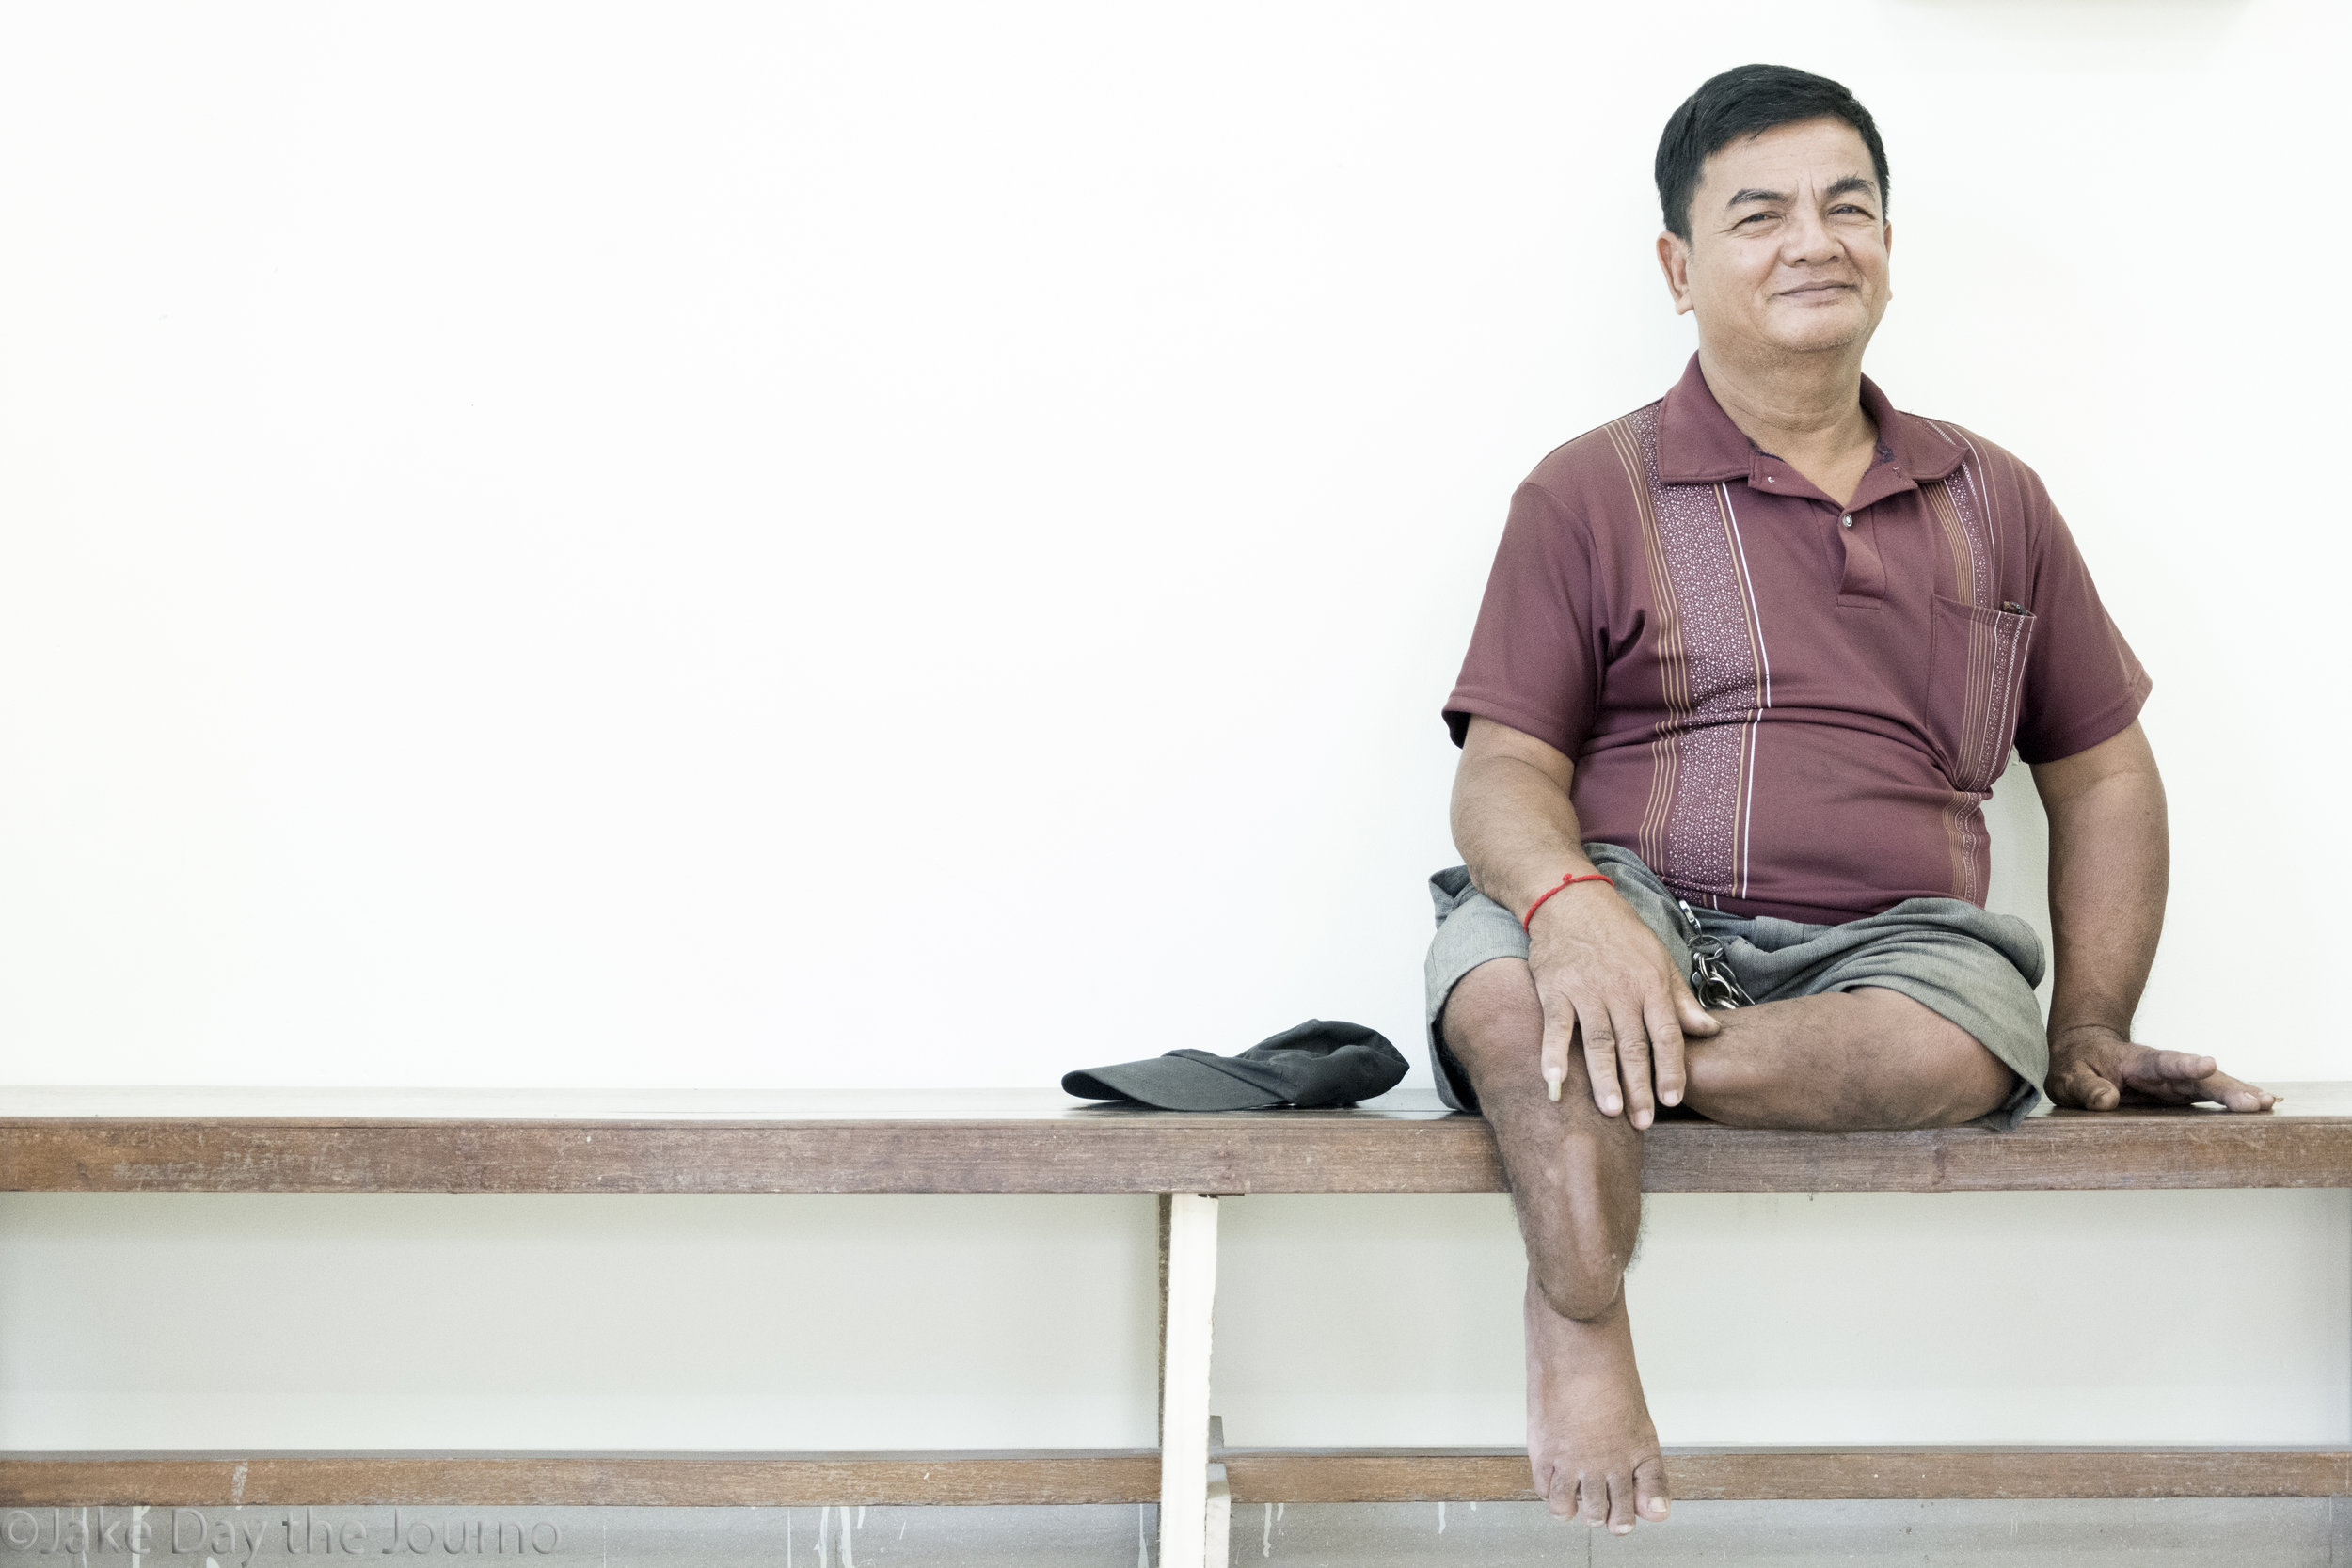 Pech Lun has suffered from osteoporosis since birth. He waits to be seen by a physician at the Exceed Cambodian School of Prosthetics and Orthotics on 15/01/18 by Jake Day.